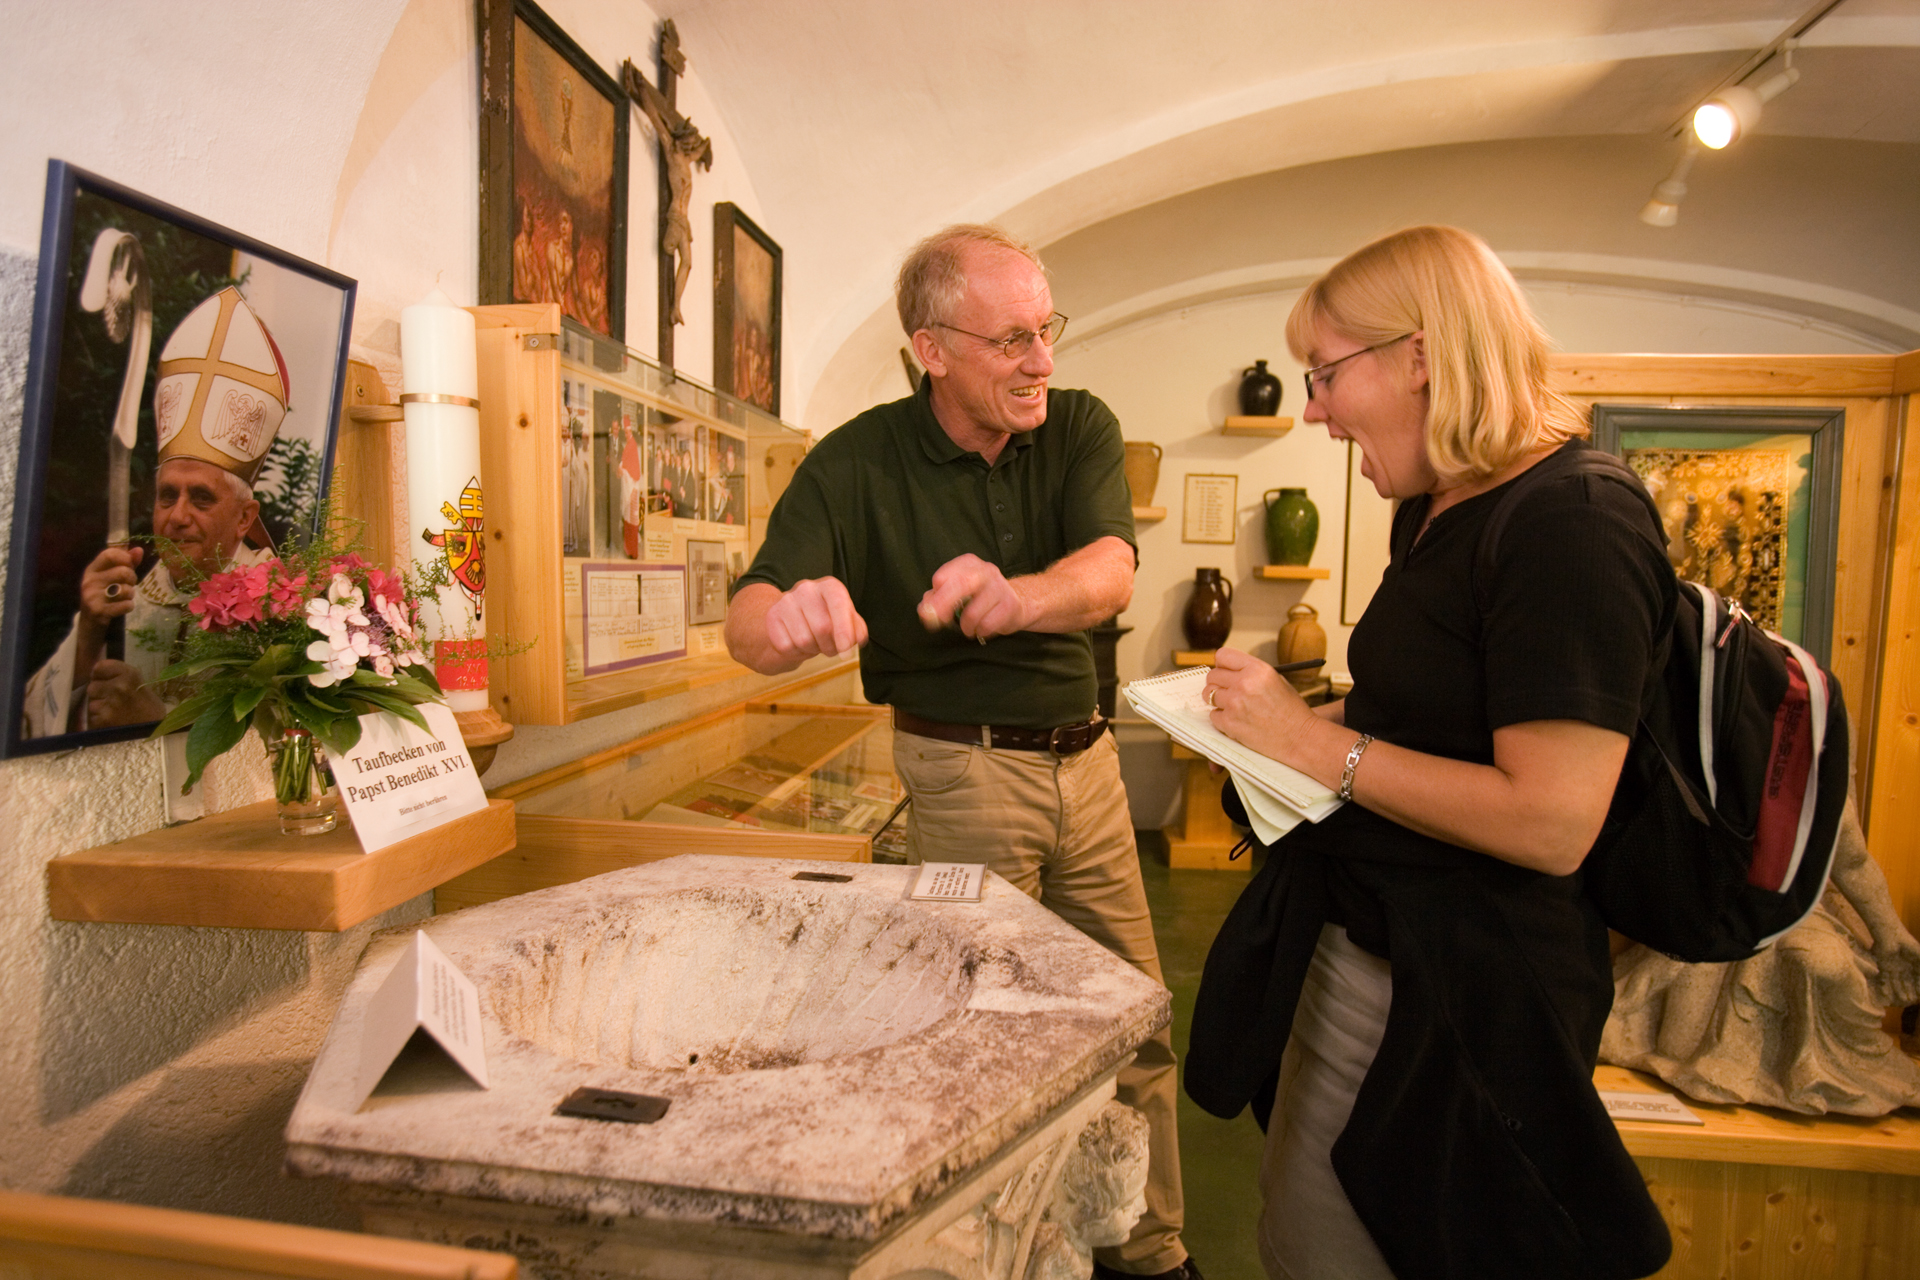 This marble baptismal used to christen Joseph Ratzinger is the main tourist attraction in Marktl's small, yet exquisite local museum.  Marktl, Germany